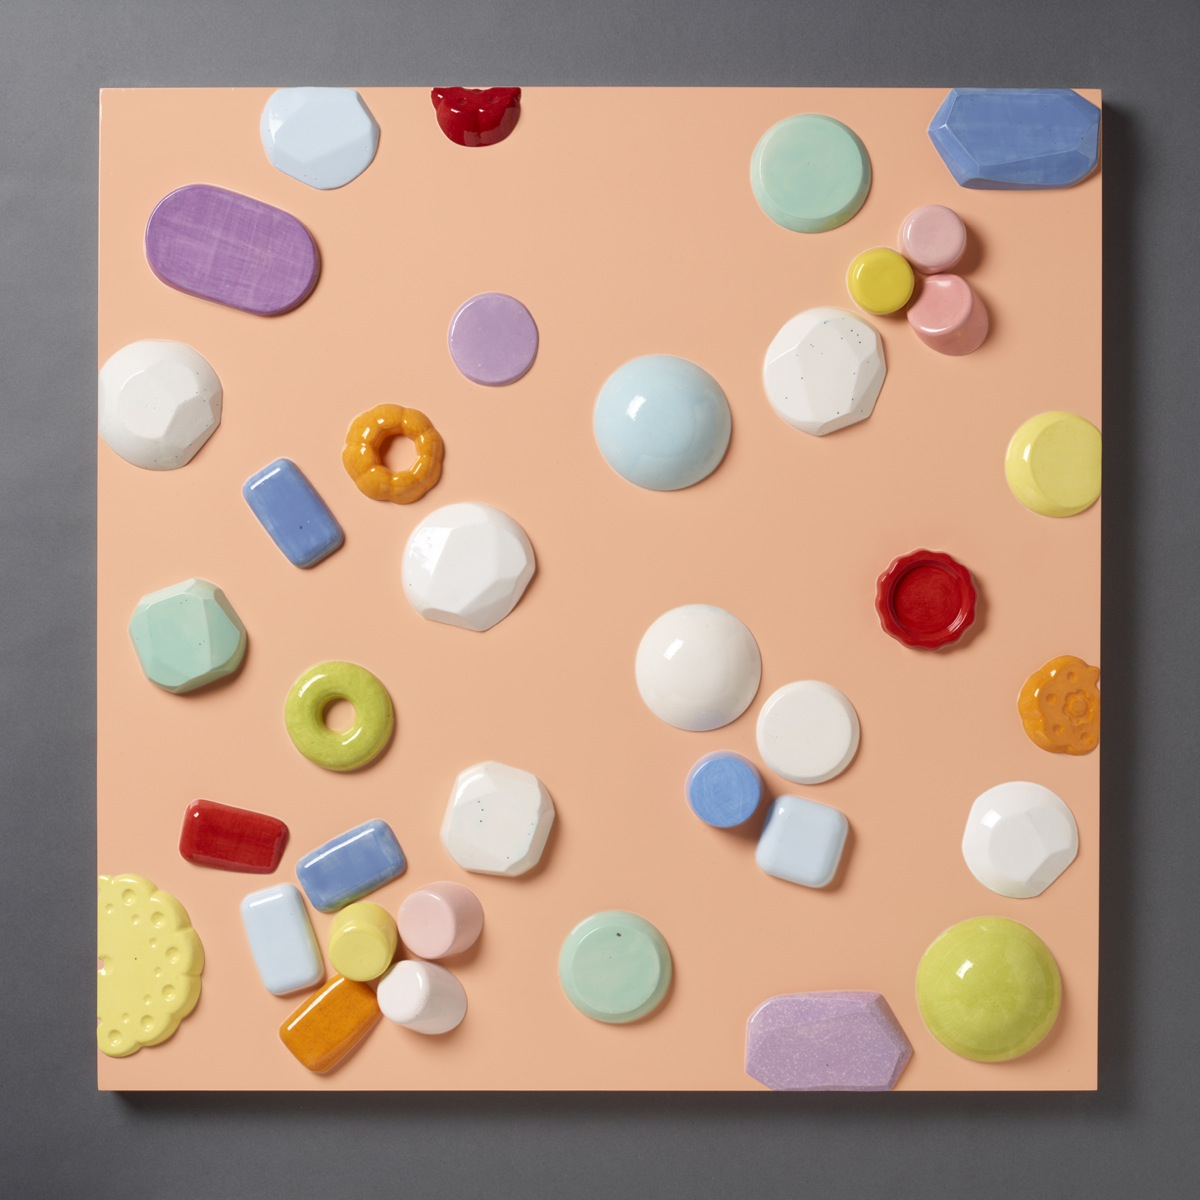 """Candy Series #5 – 2012 – High Fired Ceramics on Automotive Finished Panel – 36 x 36 - <a href=""""mailto:judbergeron@mac.com?subject=Inquire: Candy Series #5 – 2012"""">Inquire</a>"""